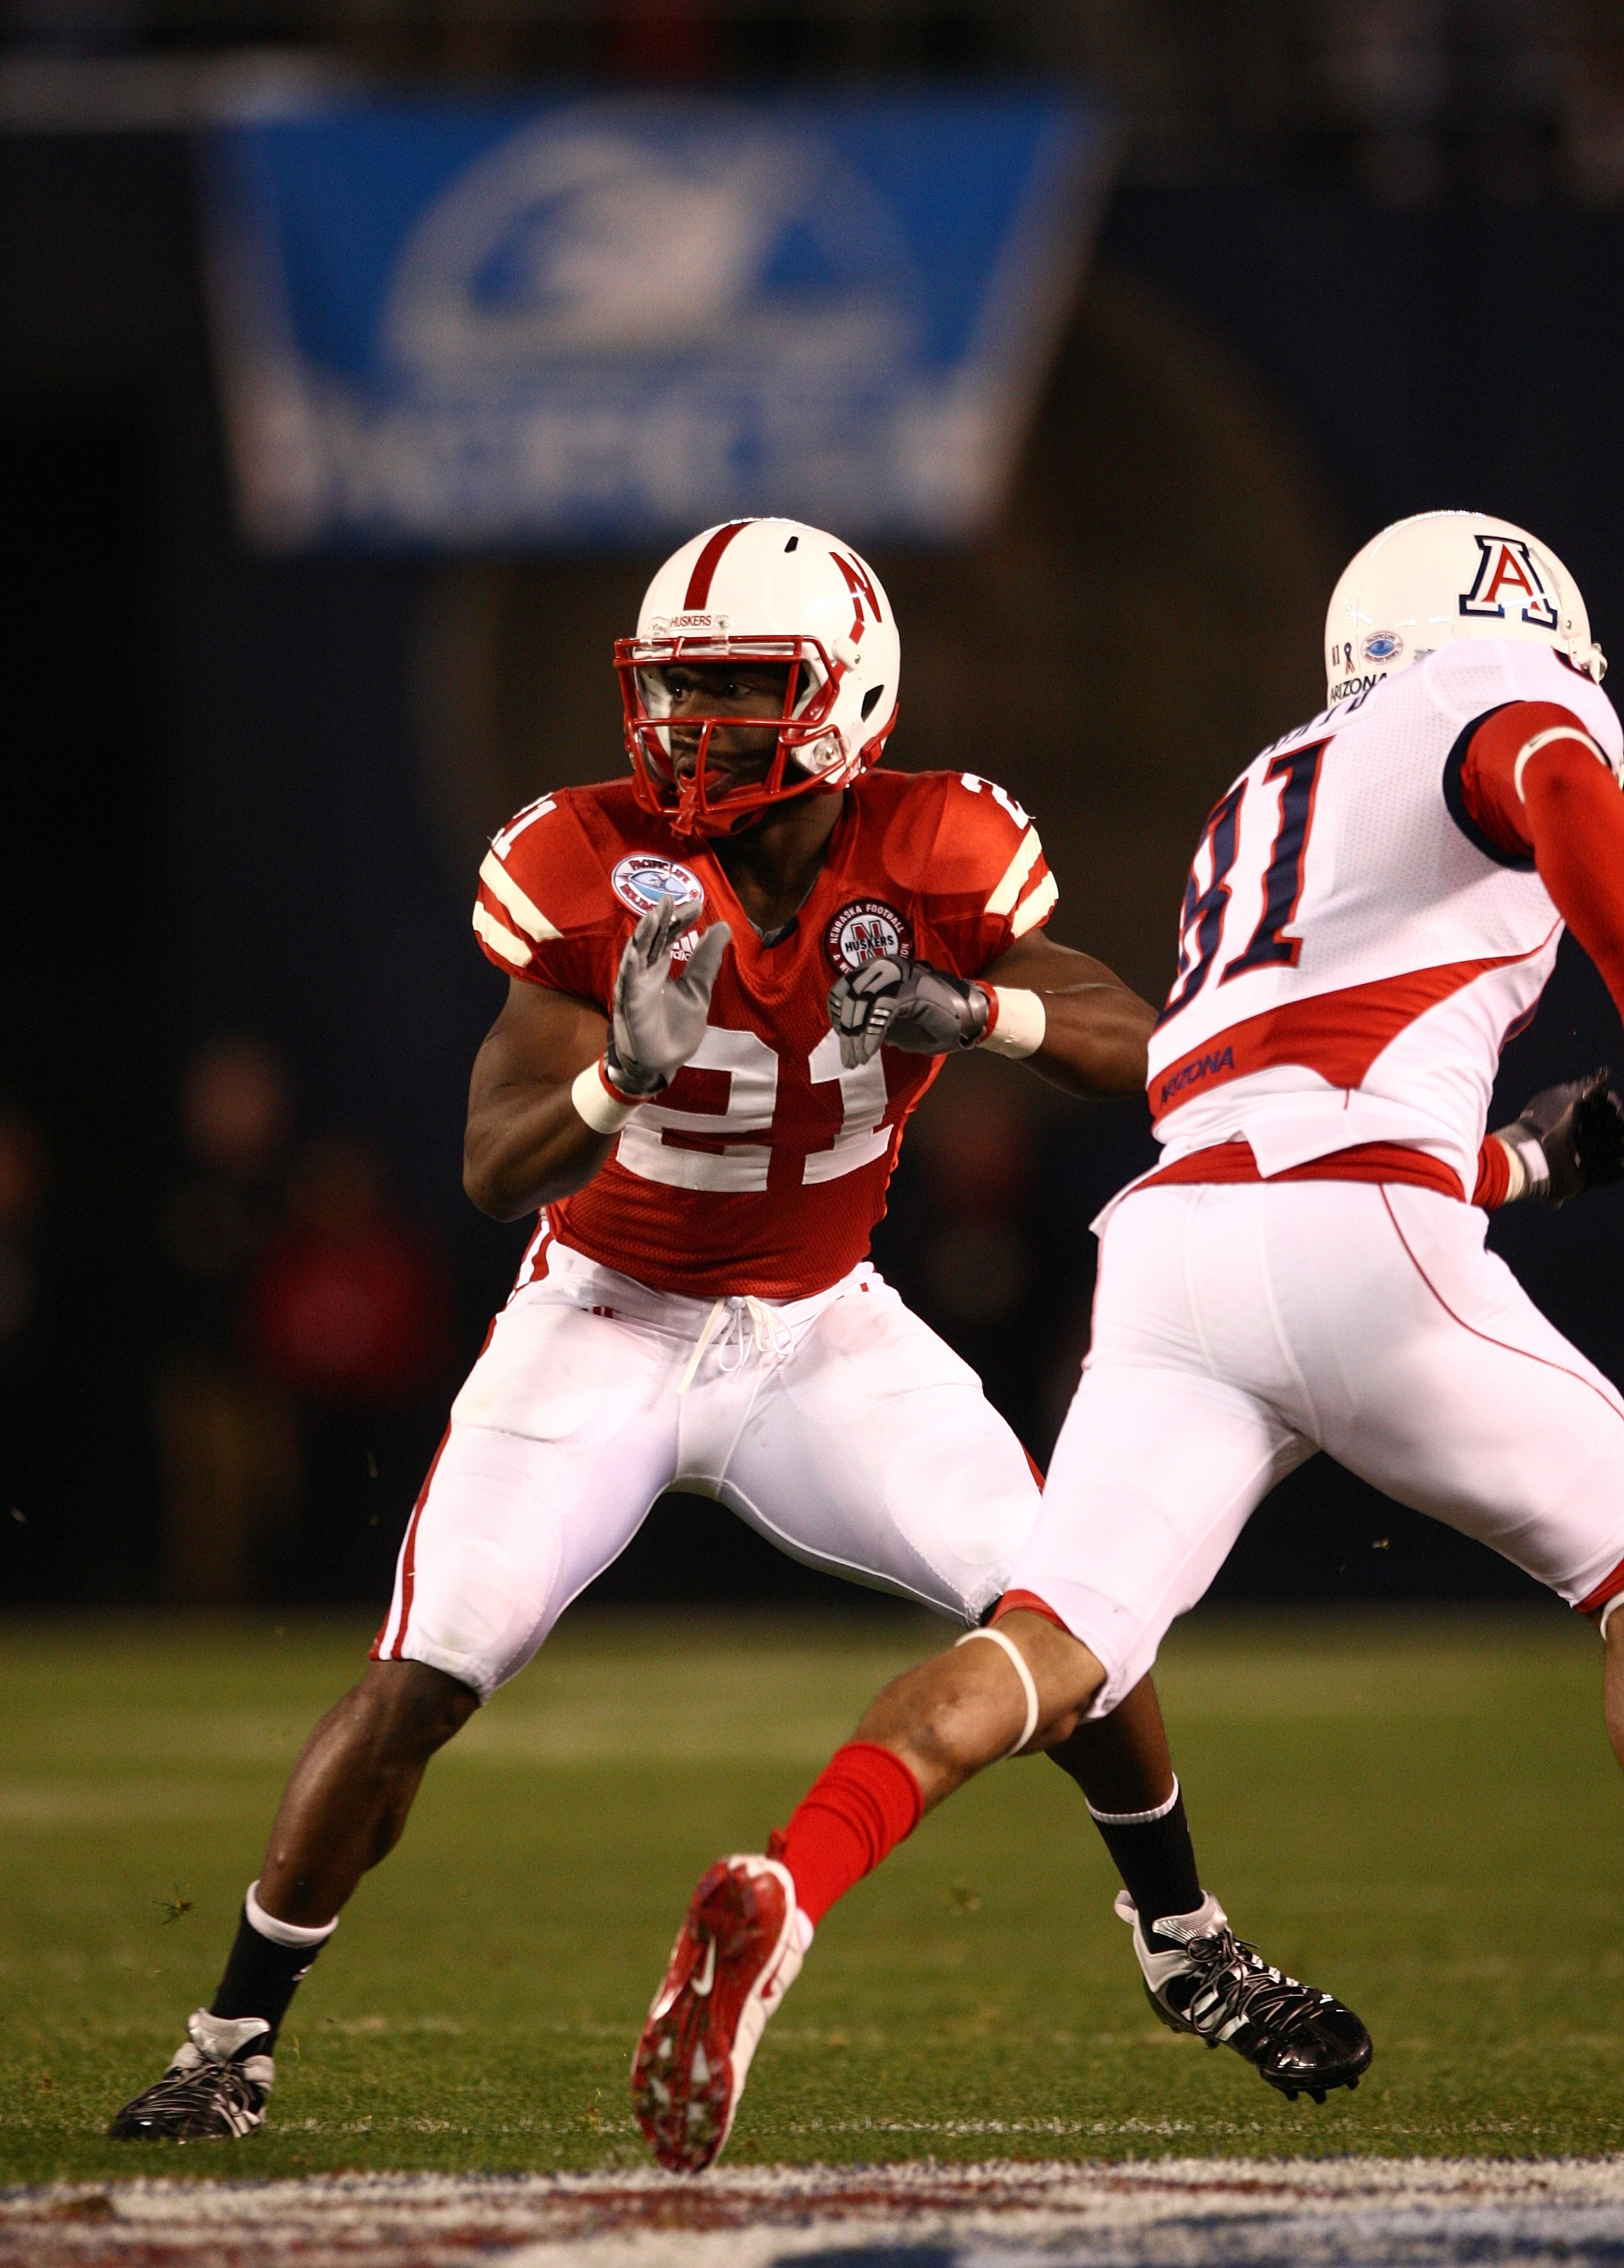 SAN DIEGO - DECEMBER 30:  Prince Amukamara #21 of the University of Nebraska Cornhuskers defends the play during the Pacific Life Holiday Bowl against University of Arizona Wildcats on December 30, 2009 at Qualcomm Stadium in San Diego, California. The Co